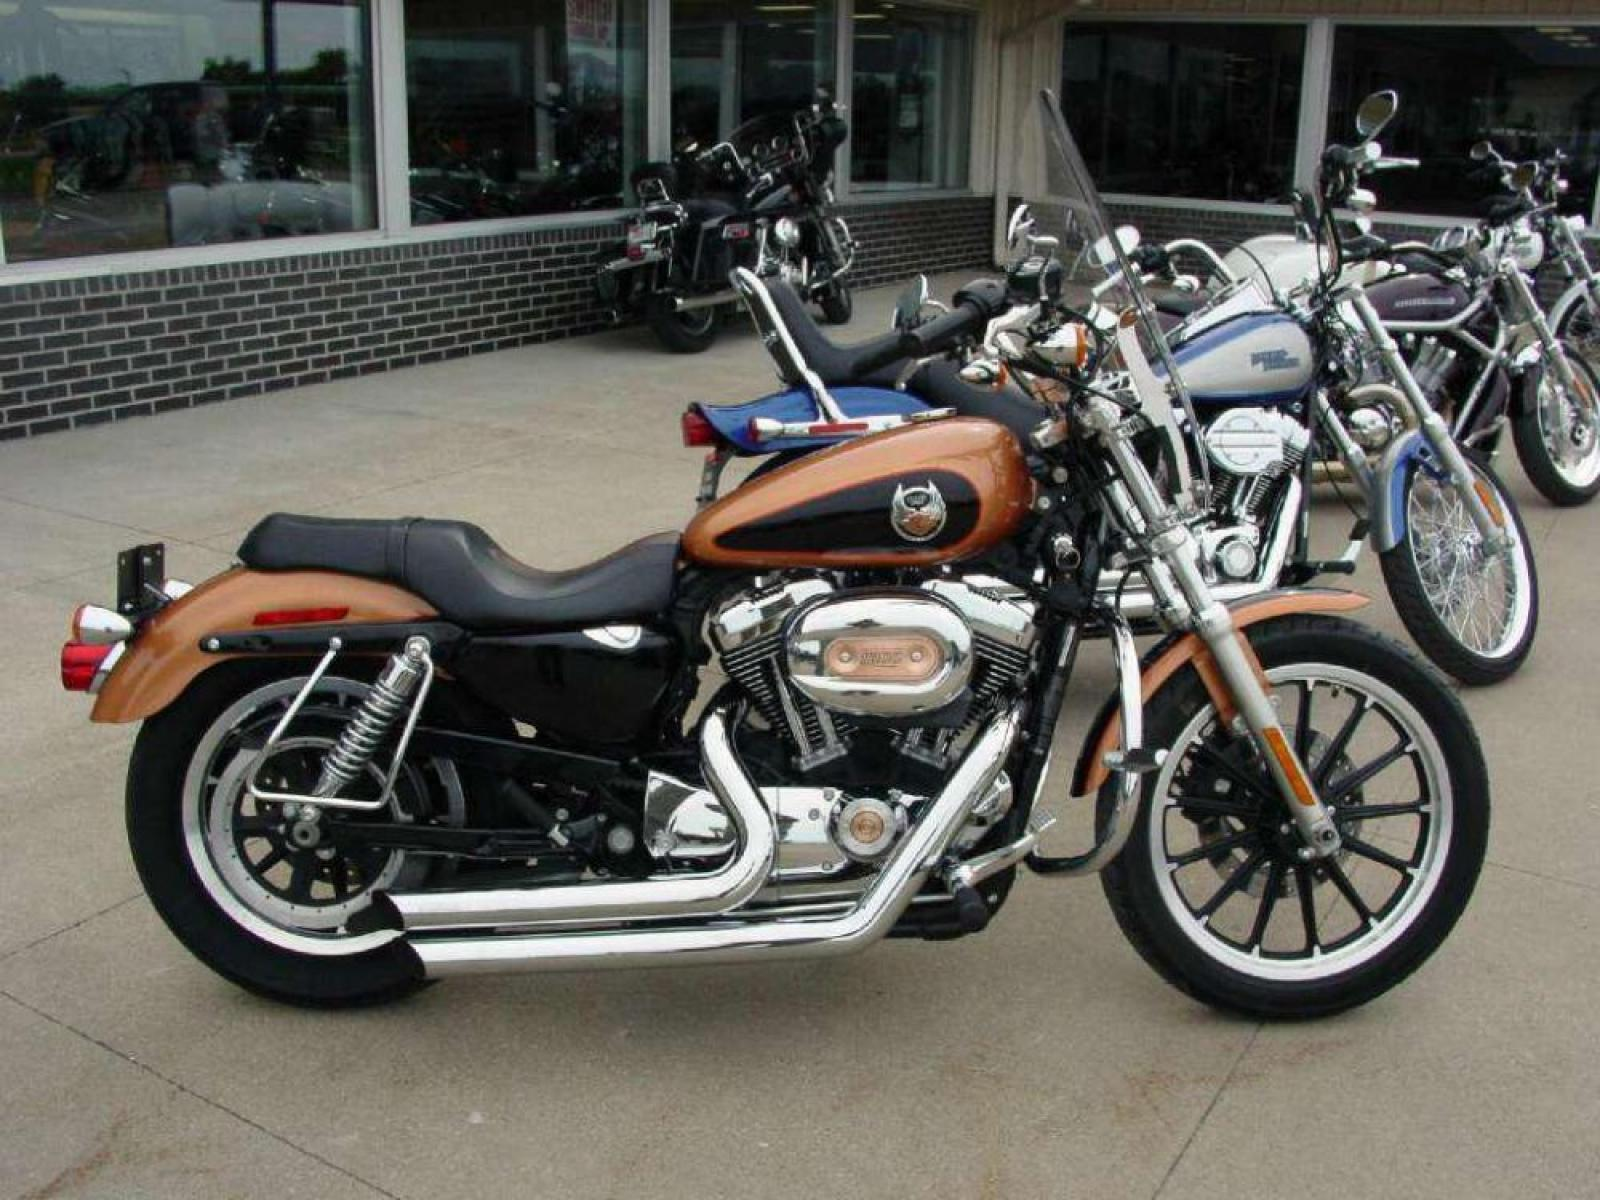 2008 harley davidson xl1200l sportster 1200 low moto zombdrive com. Black Bedroom Furniture Sets. Home Design Ideas